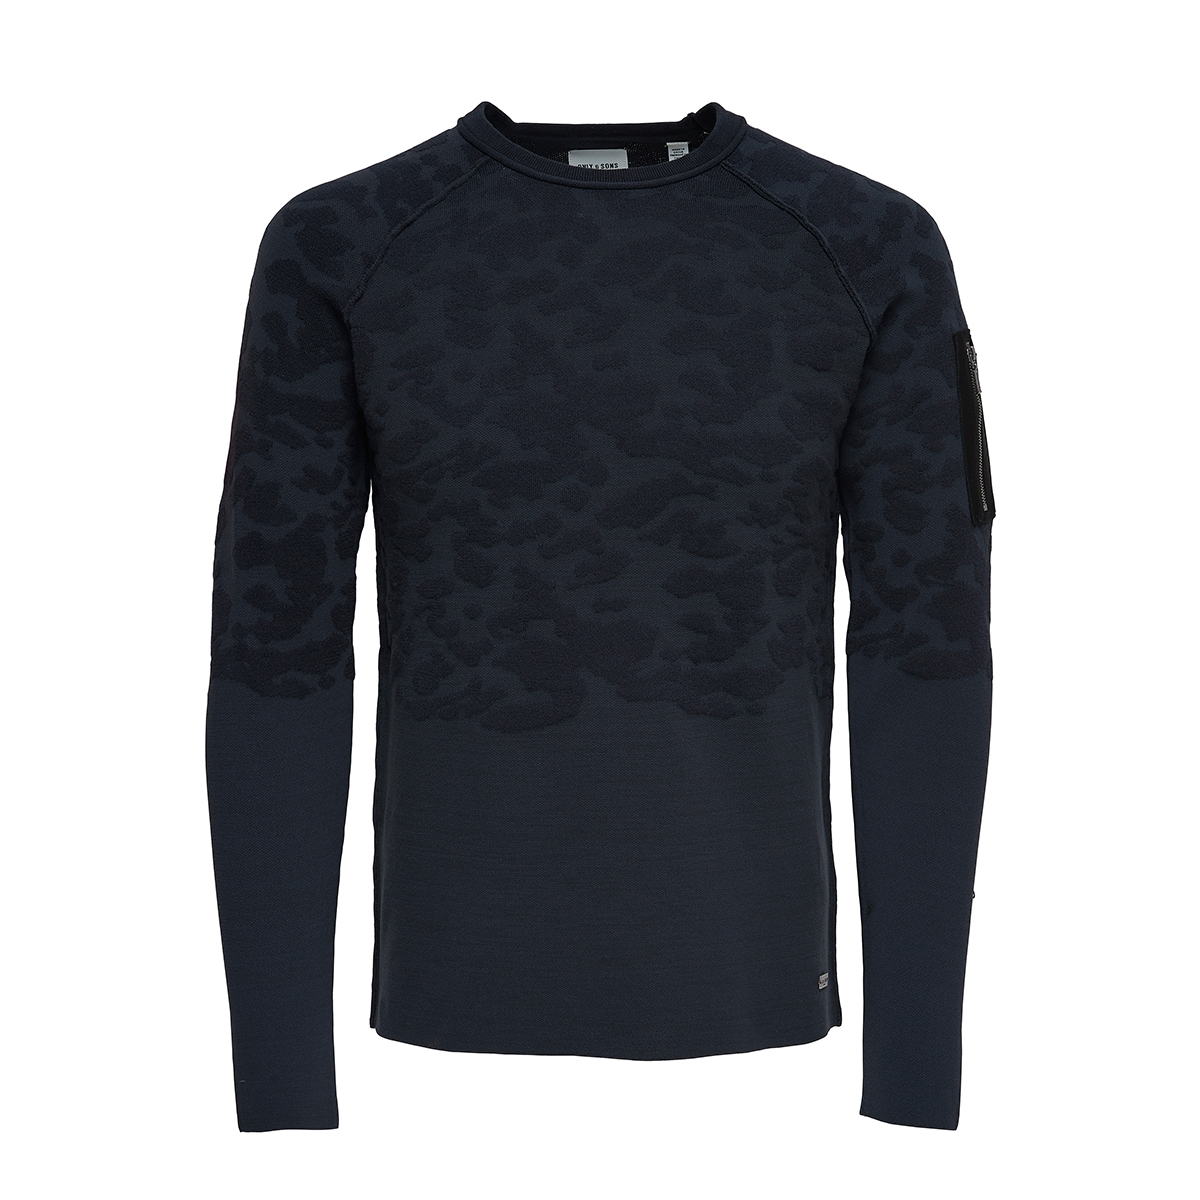 onstobi 12 crew neck 22006874 only & sons sweater dark navy